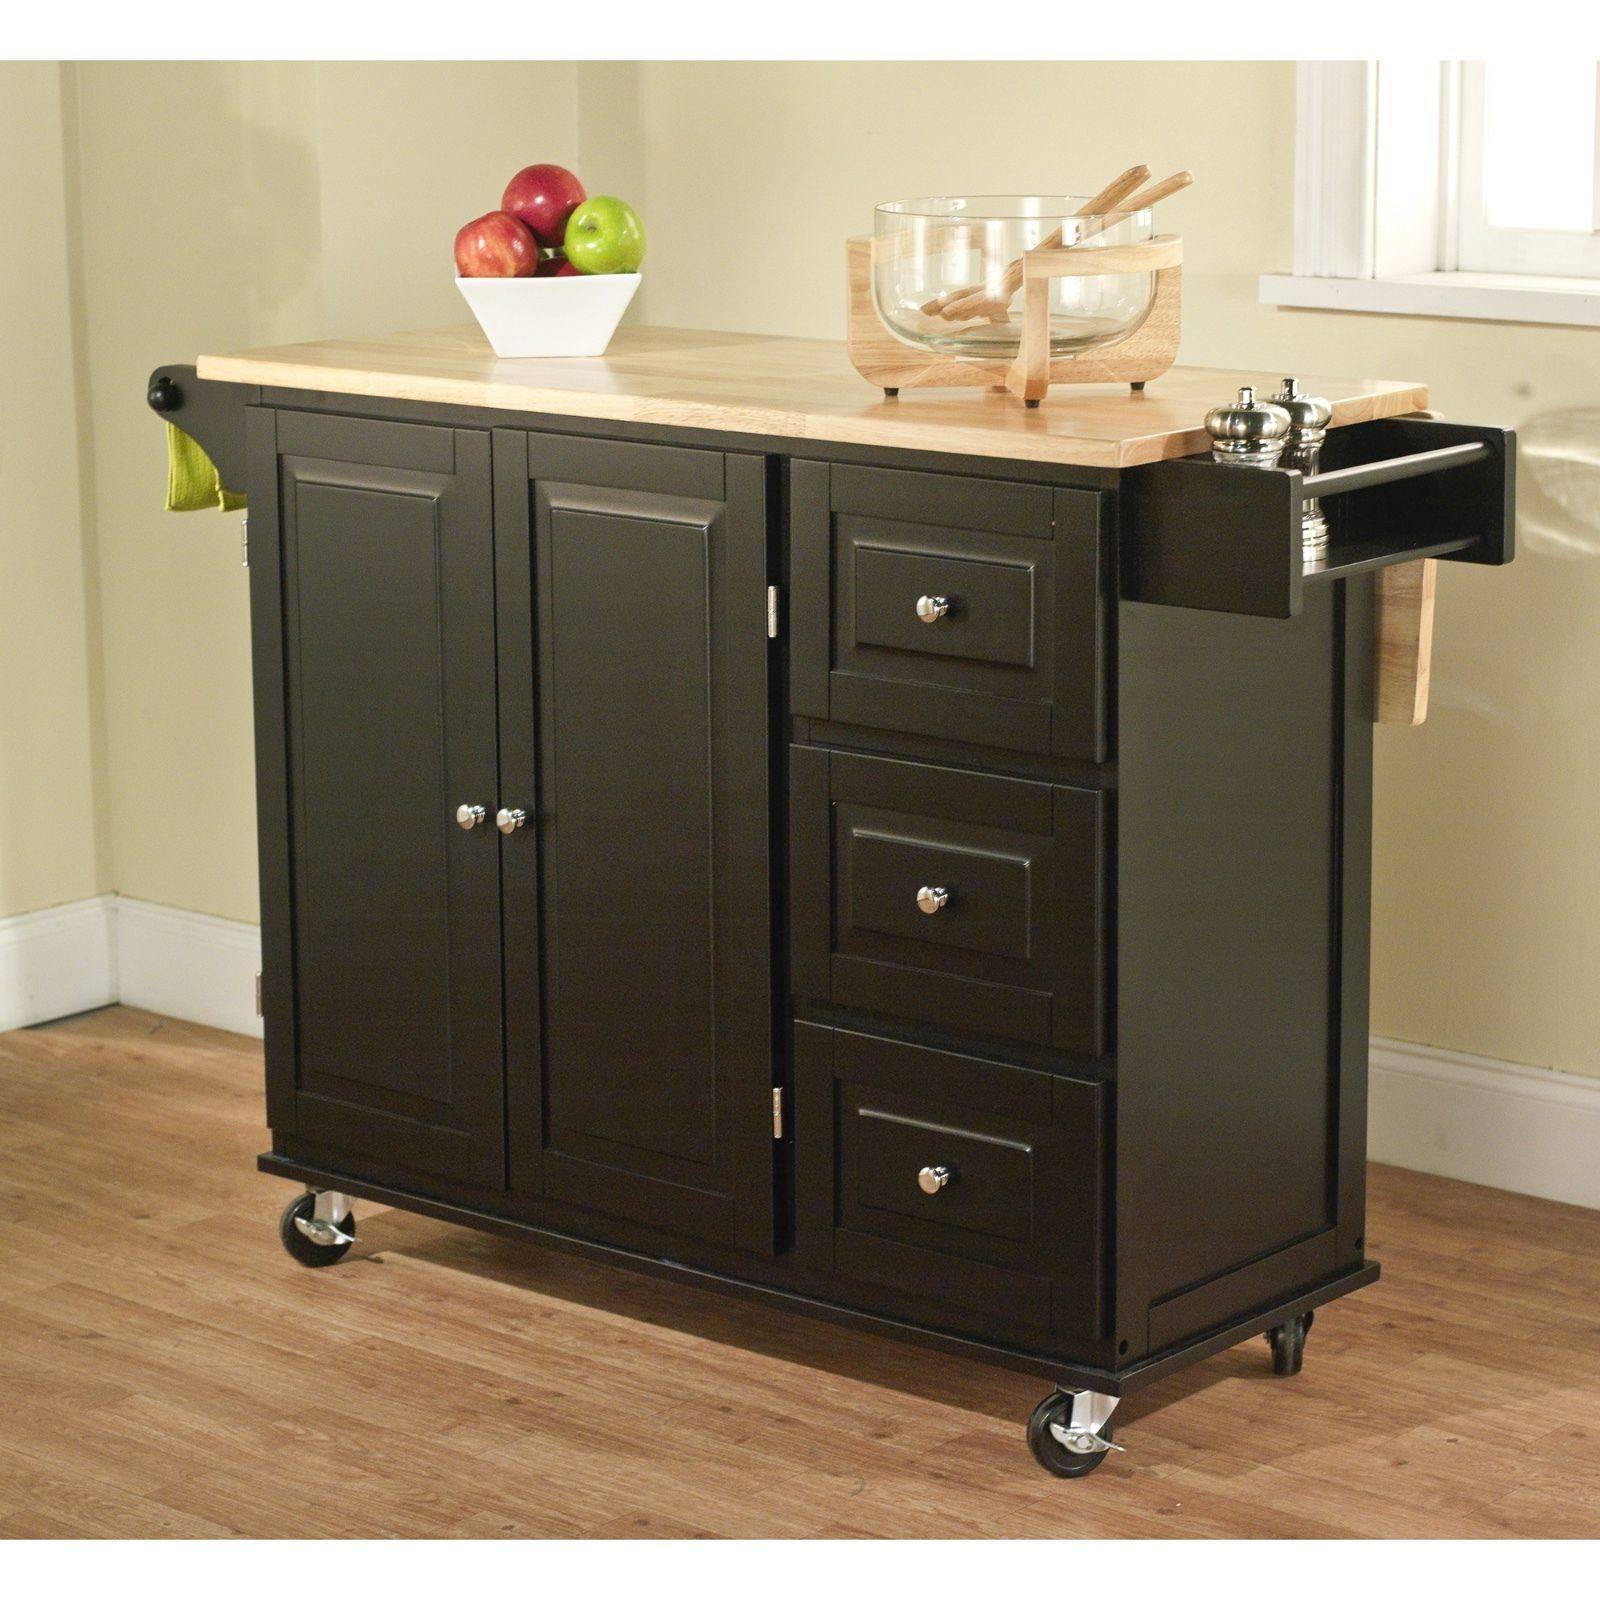 Kitchen Island Cart Portable Small Rolling Movable Mobile Wheels Trolley Table Ebay